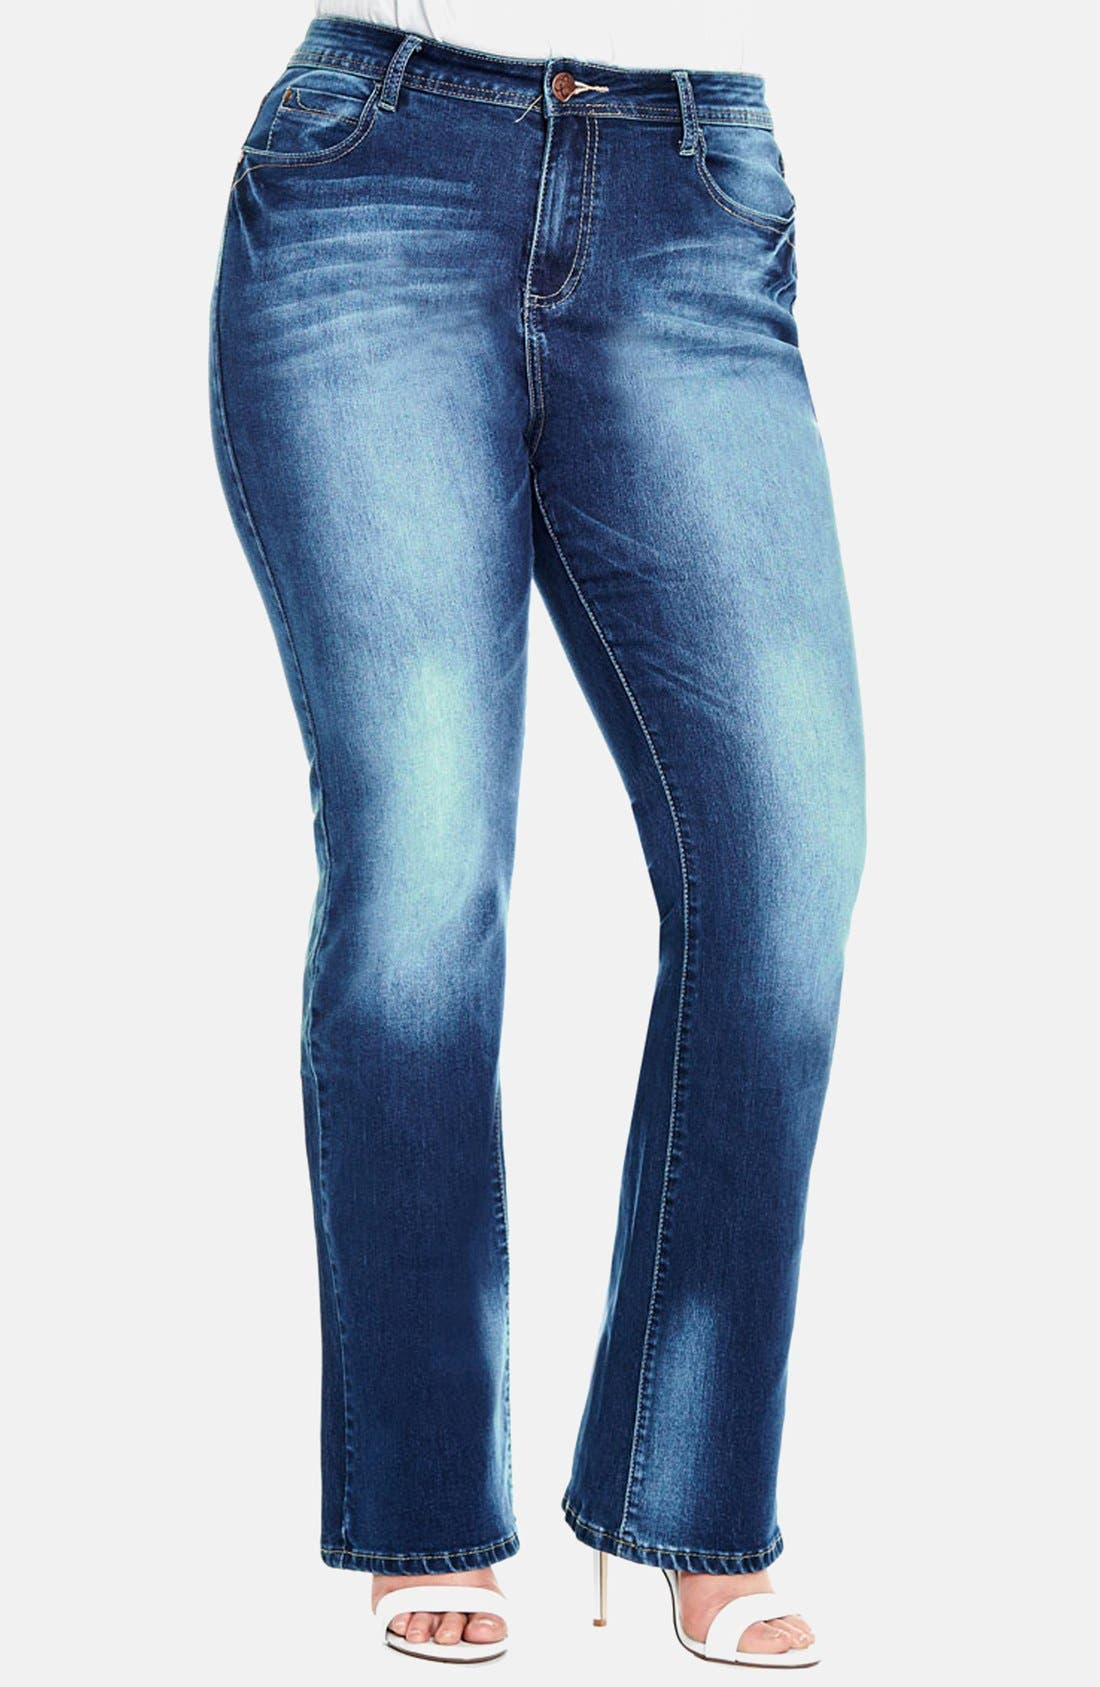 Alternate Image 1 Selected - City Chic 'Clean Cut' Stretch Bootcut Jeans (Mid Denim) (Plus Size)